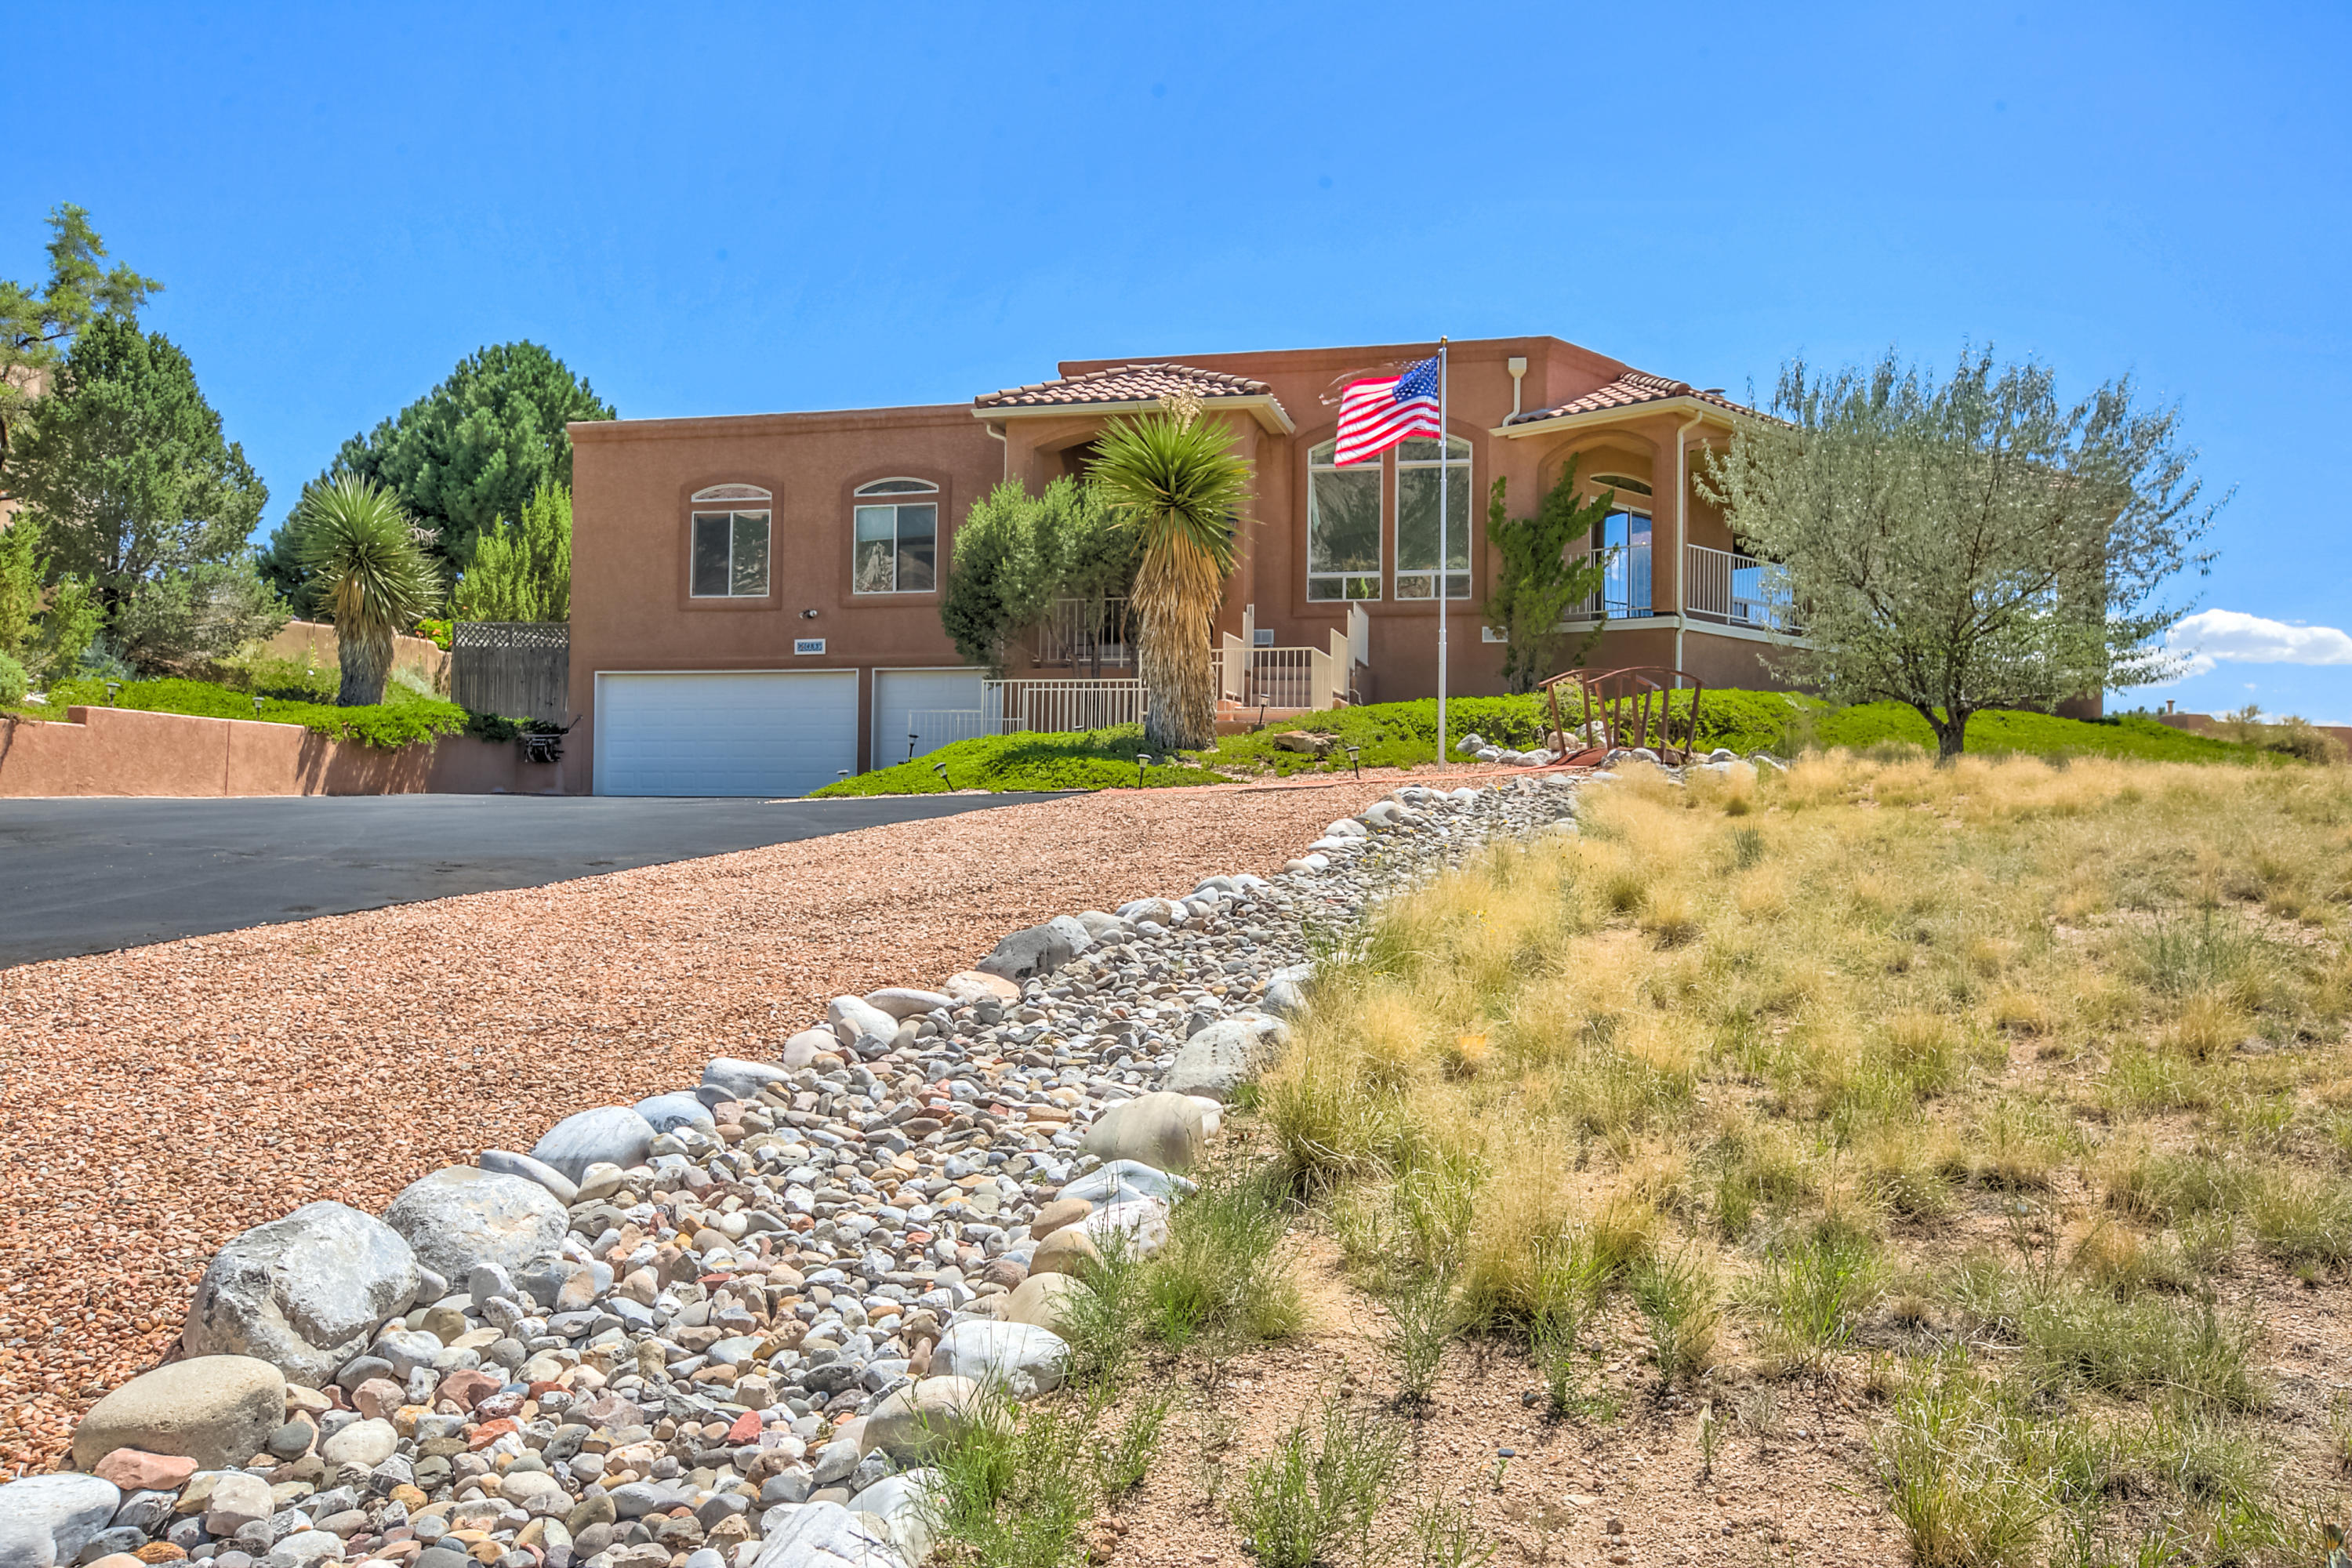 1483 MORNING GLORY ROAD NE, ALBUQUERQUE, NM 87122